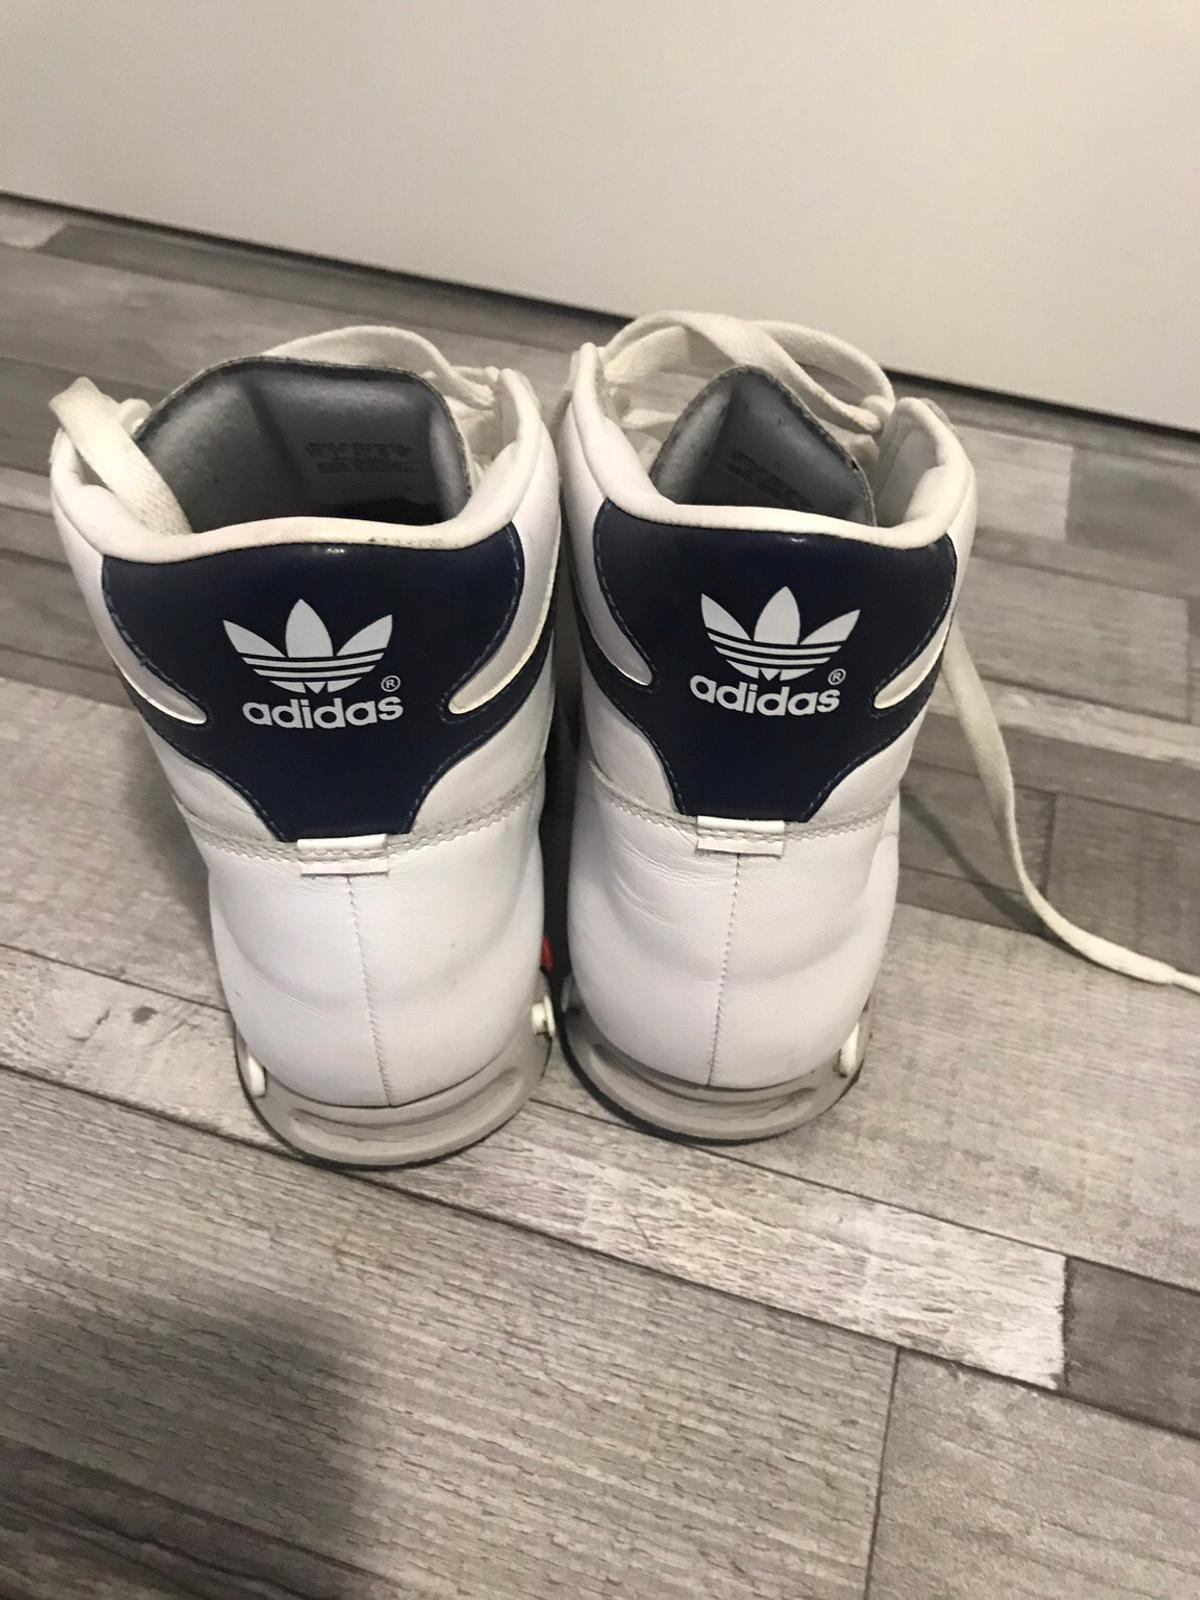 €250 sale Jogging for Adidas for Erlaa in 00 High 1230 KG 2WYDHE9I